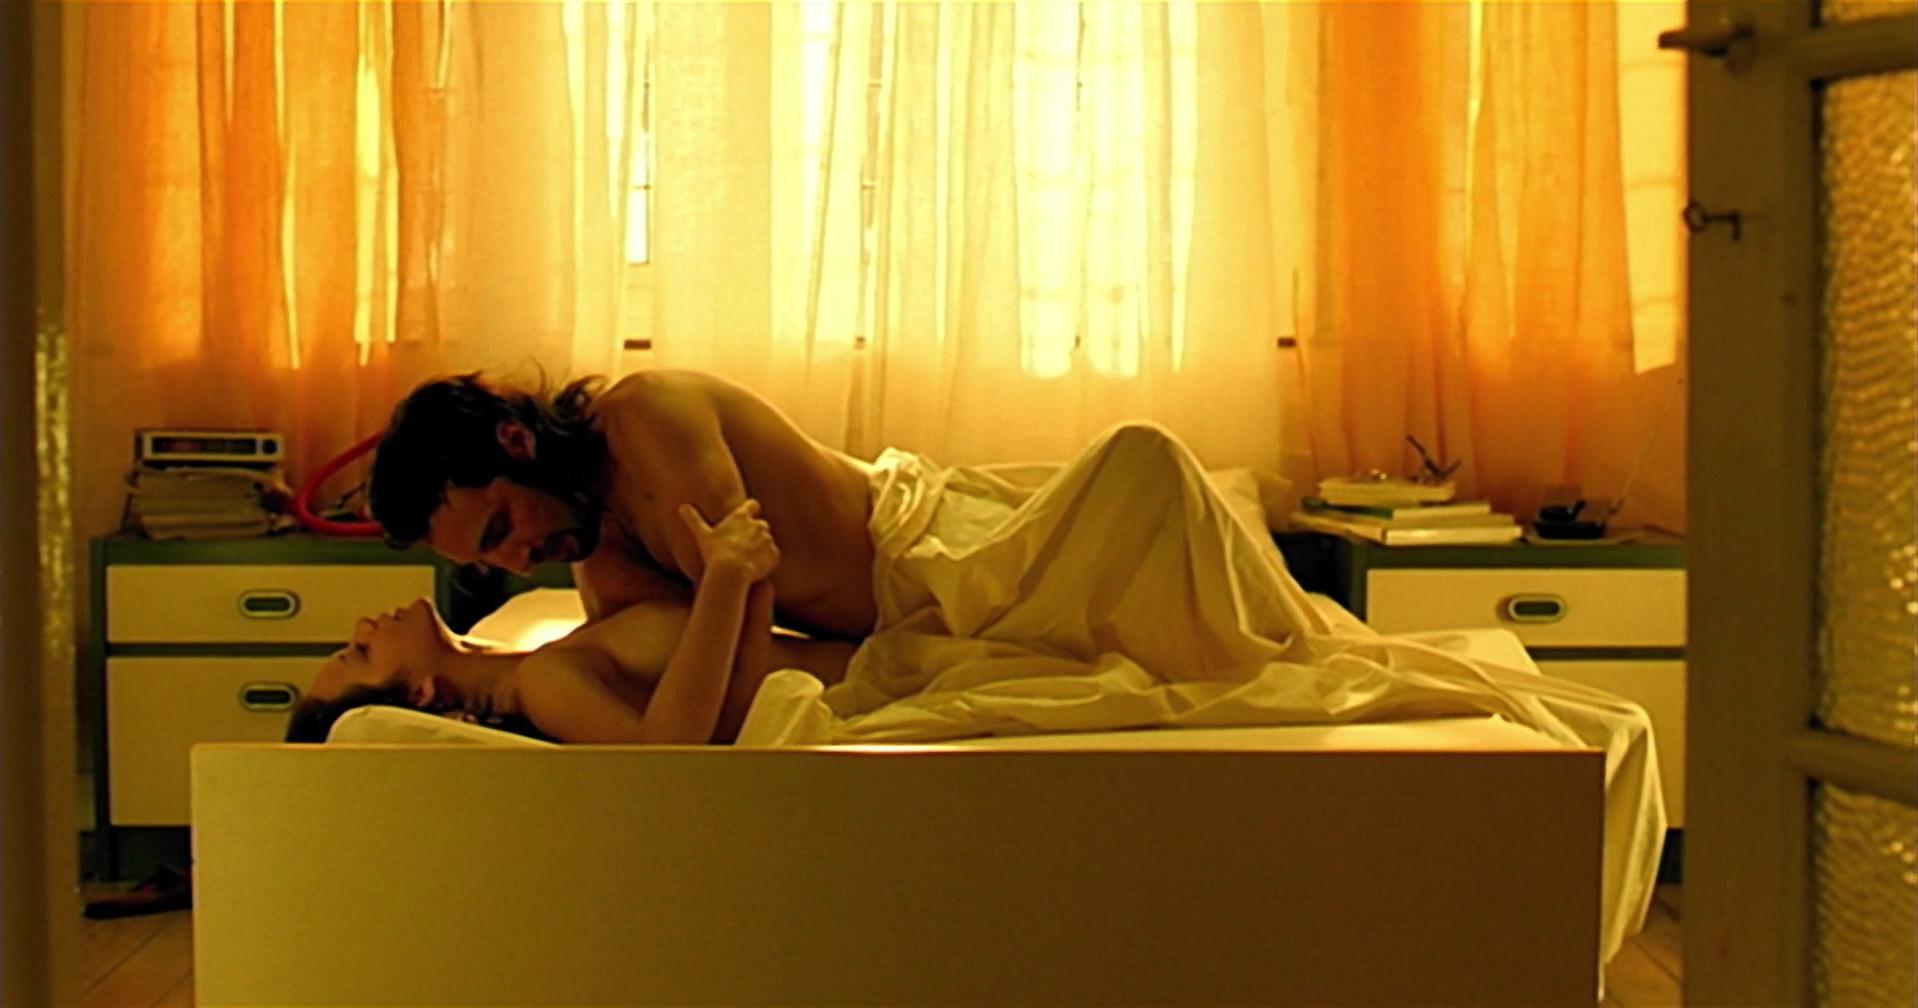 Marion Cotillard nude - Love Me if You Dare (2003)